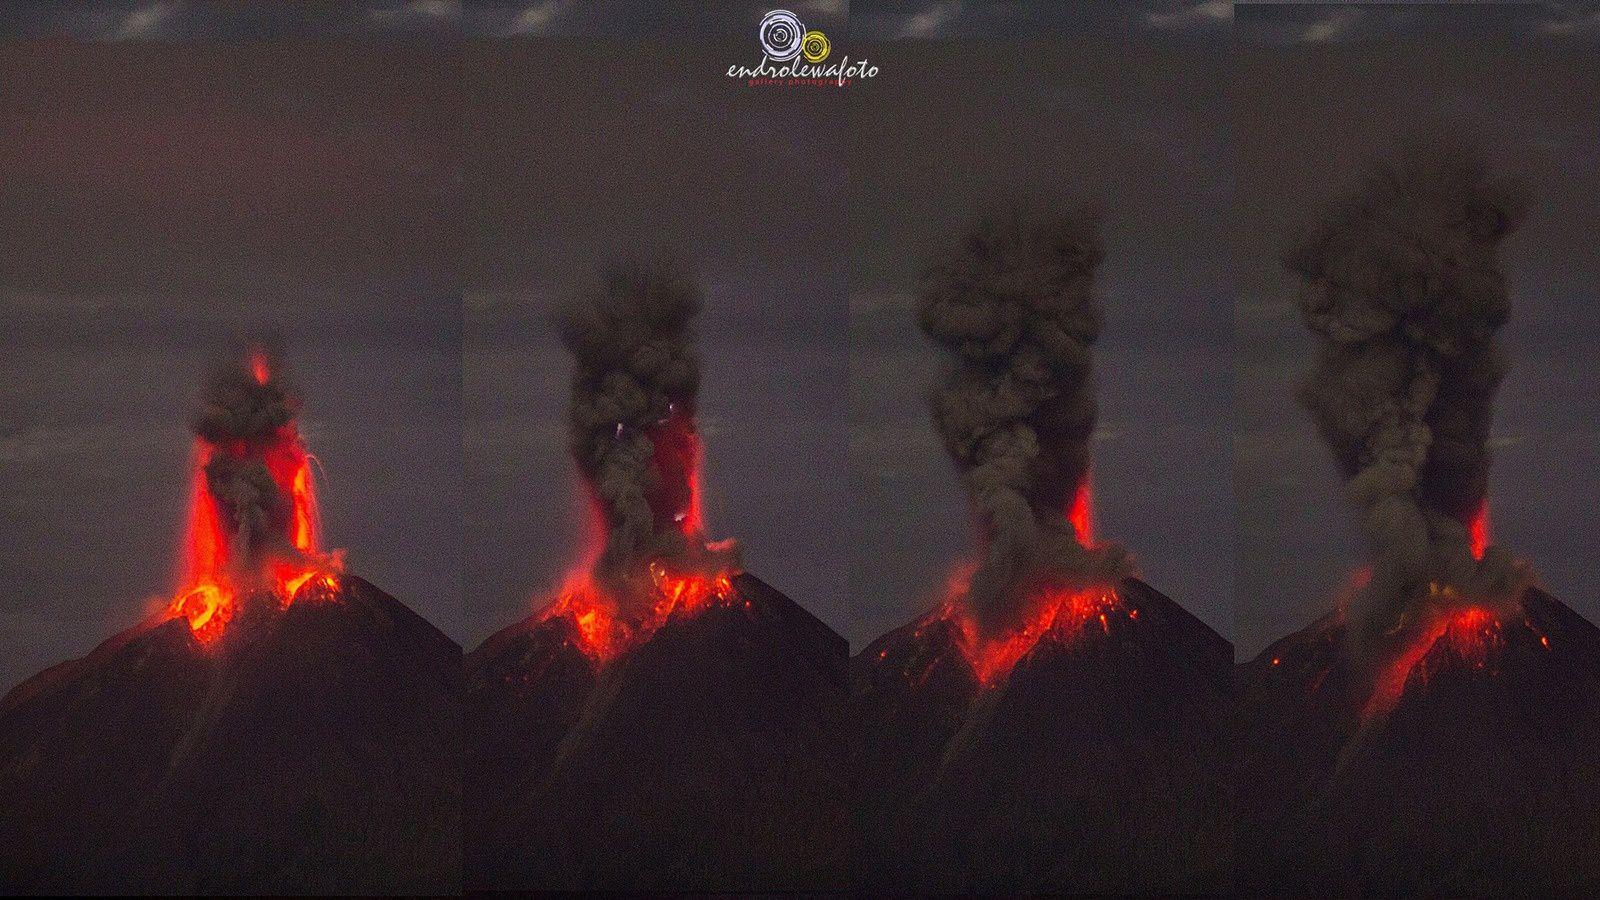 Strombolian activity in Sinabung on 31.05.2017 - photos Endro Lewa